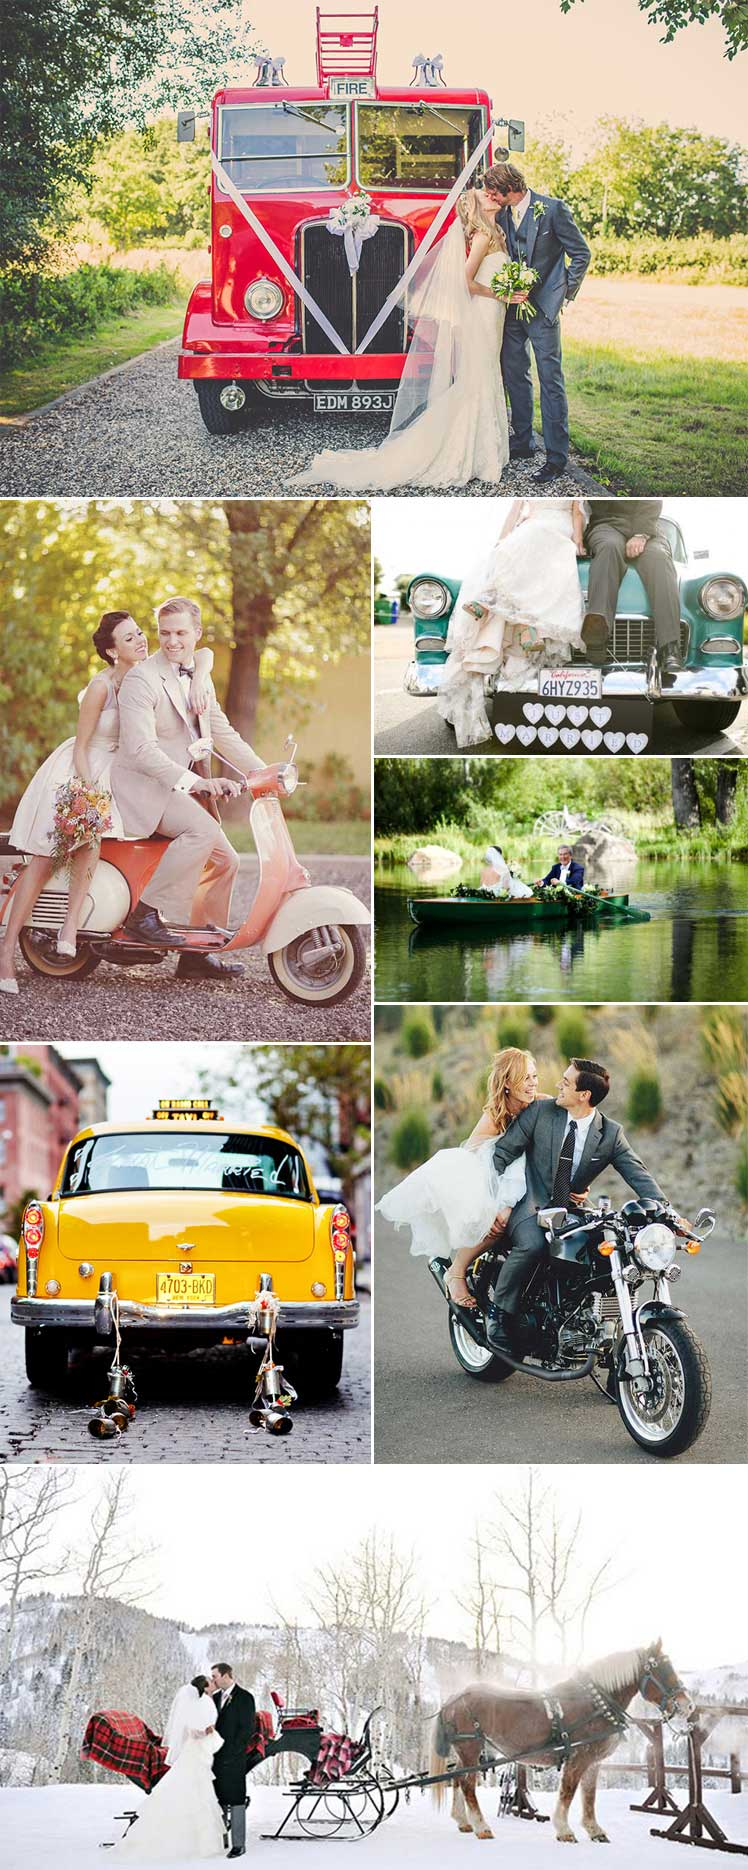 Unusual wedding transport ideas and inspo